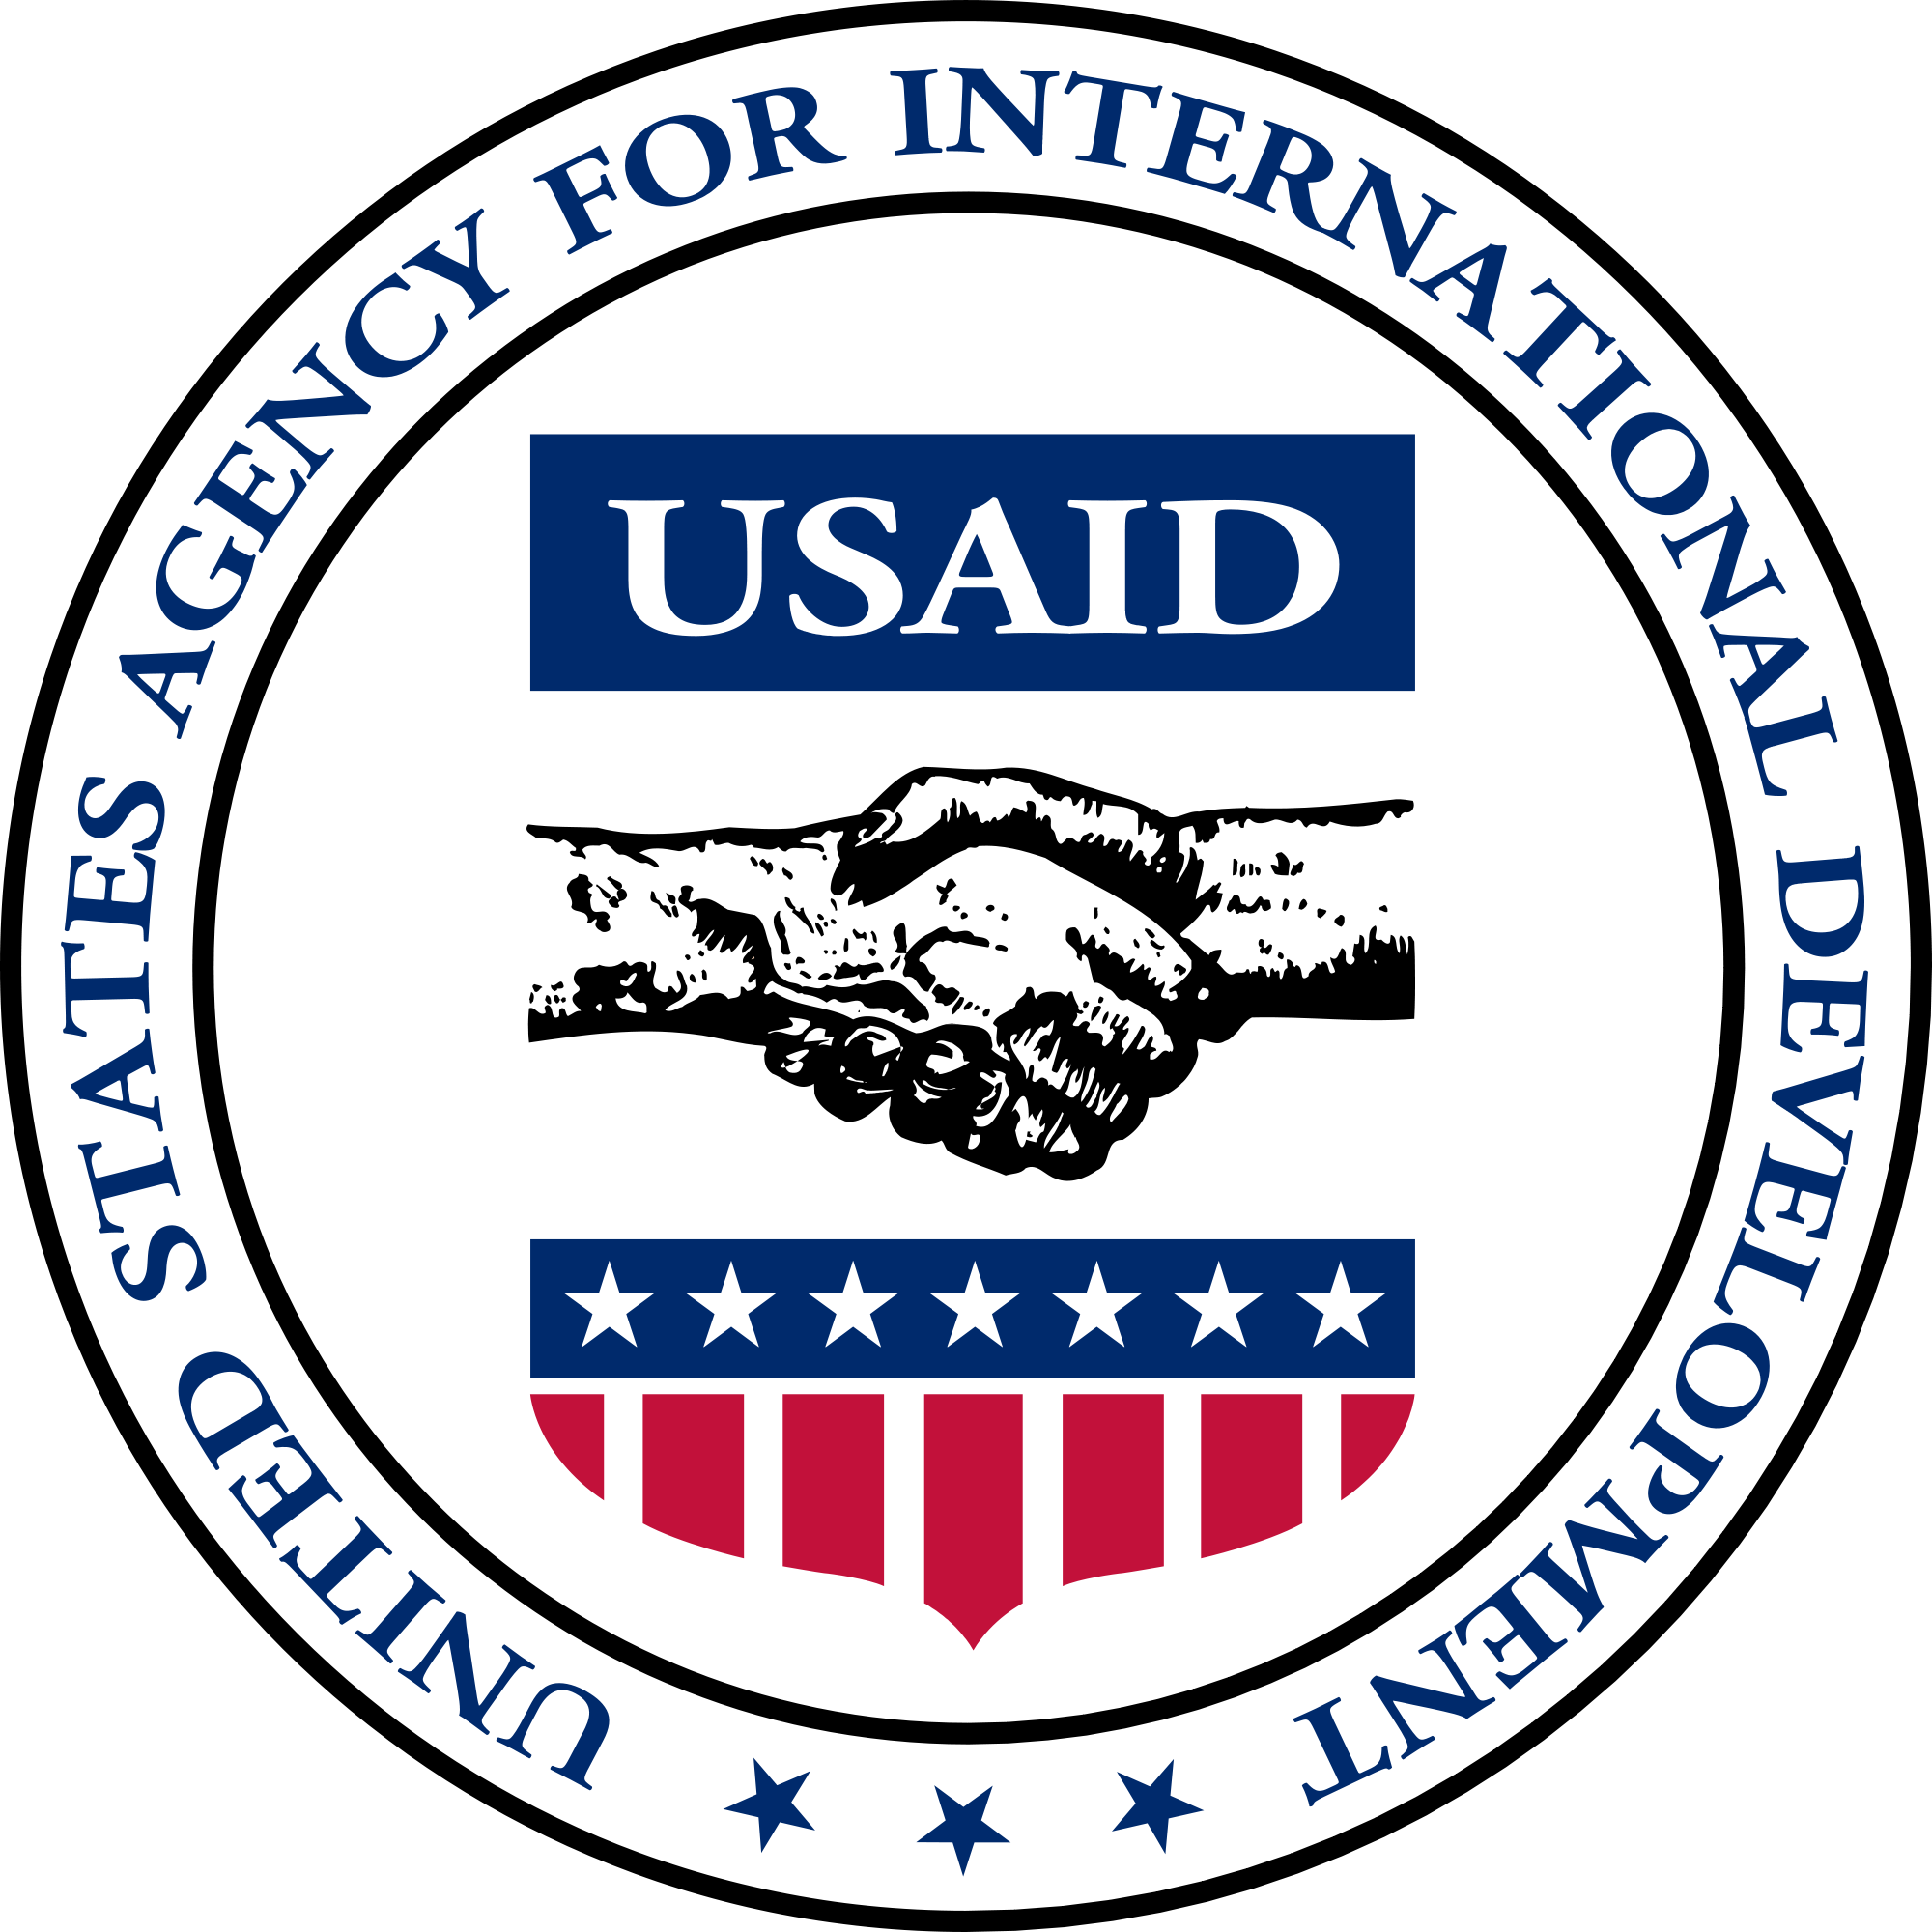 a description of the trade and development agency in the united states Trade and development agency author: united states read related entries on t, uncategorized, tr, us agency the trade and development program was established on july 1, 1980, as a component organization of the international development cooperation agency.